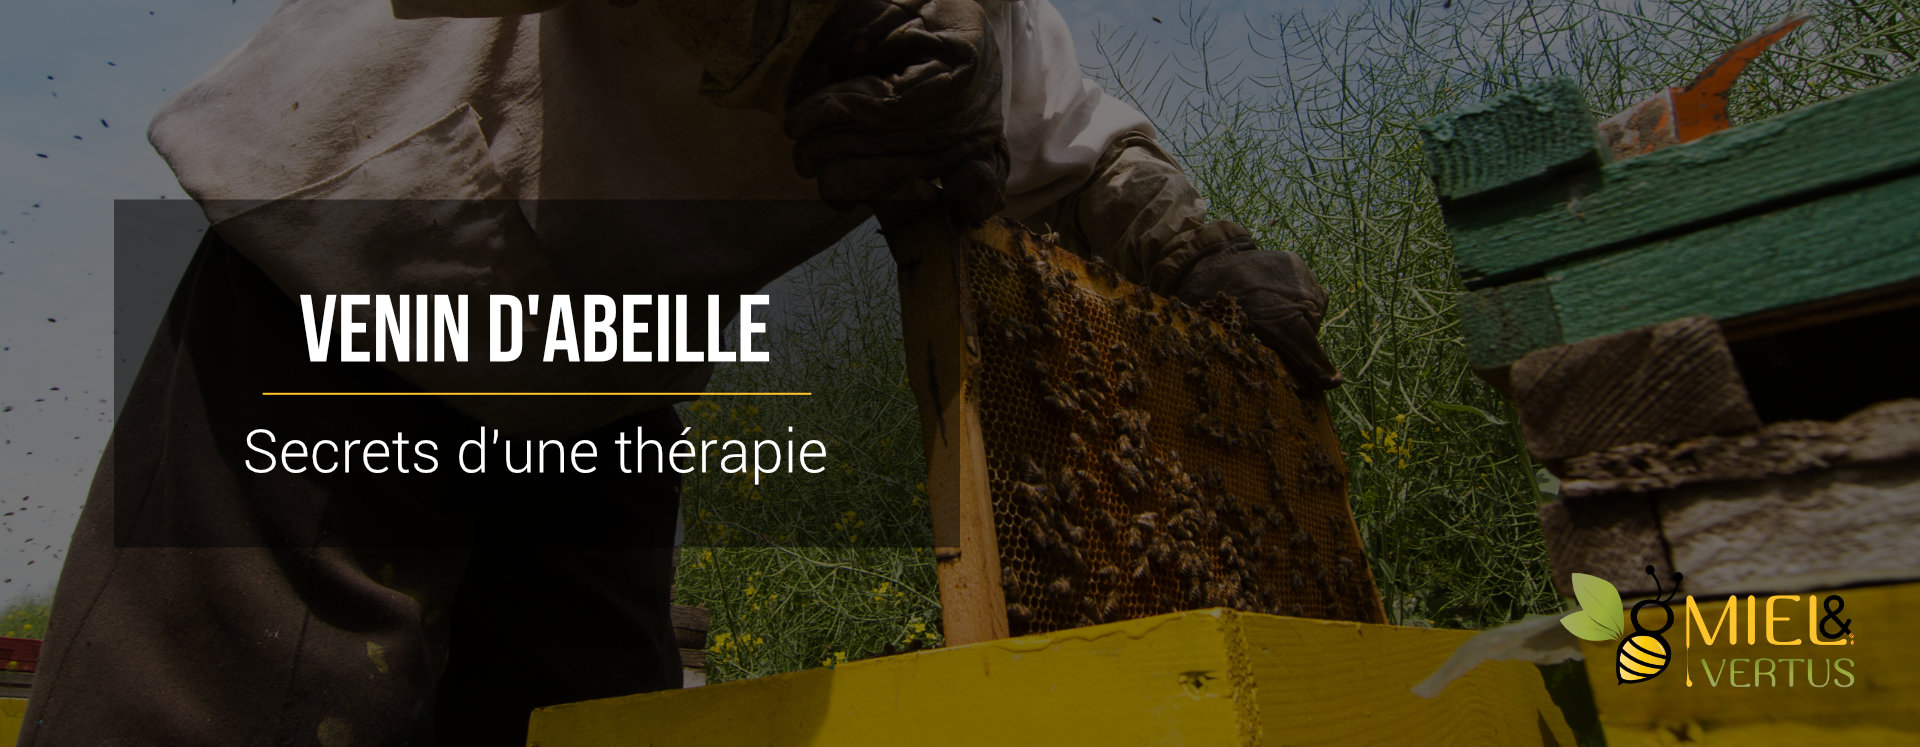 venin-abeille-secret-therapie